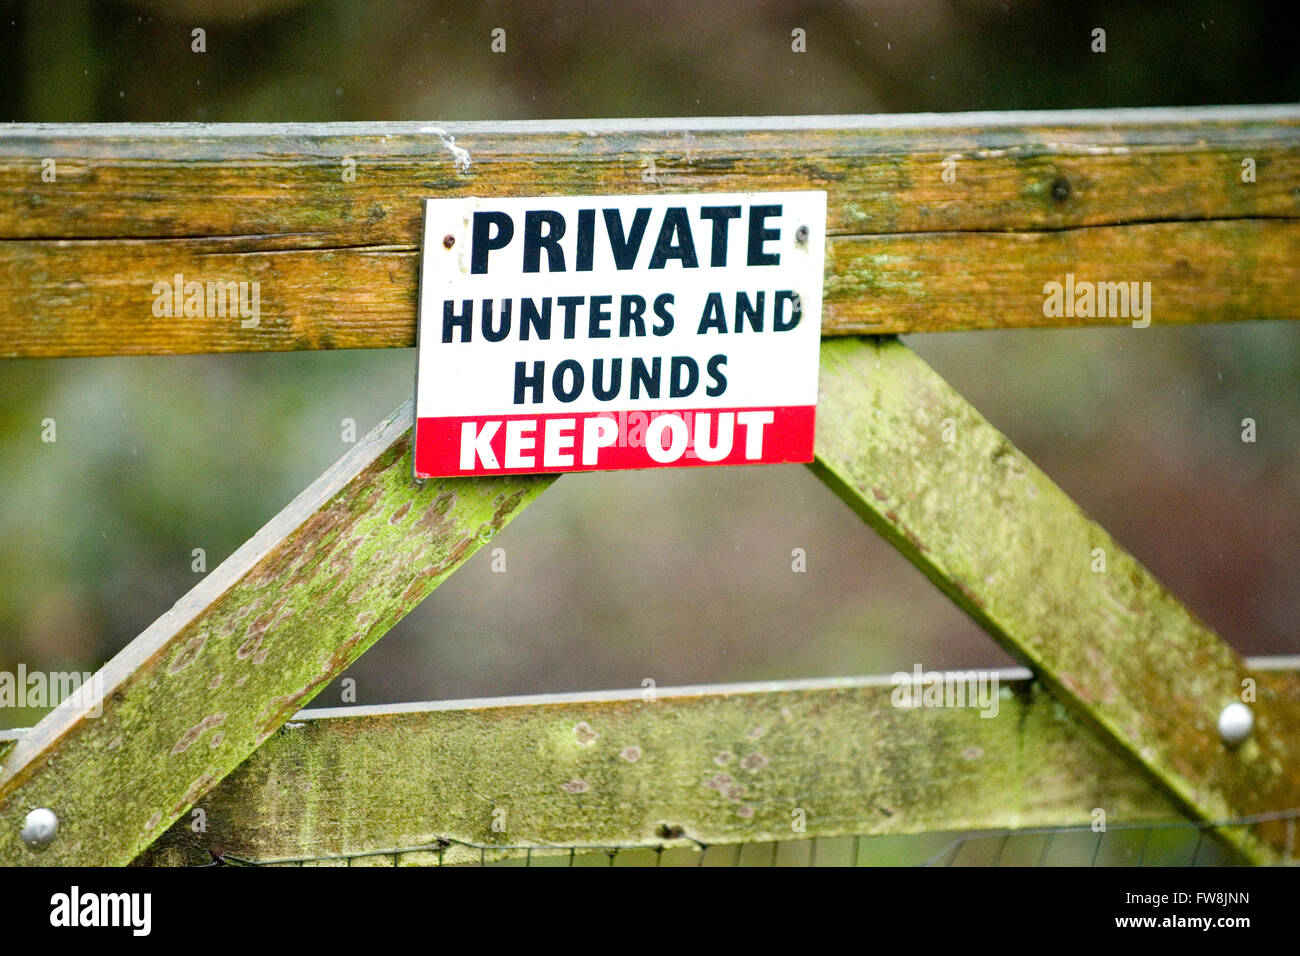 private keep out sign for hunters and hounds - Stock Image